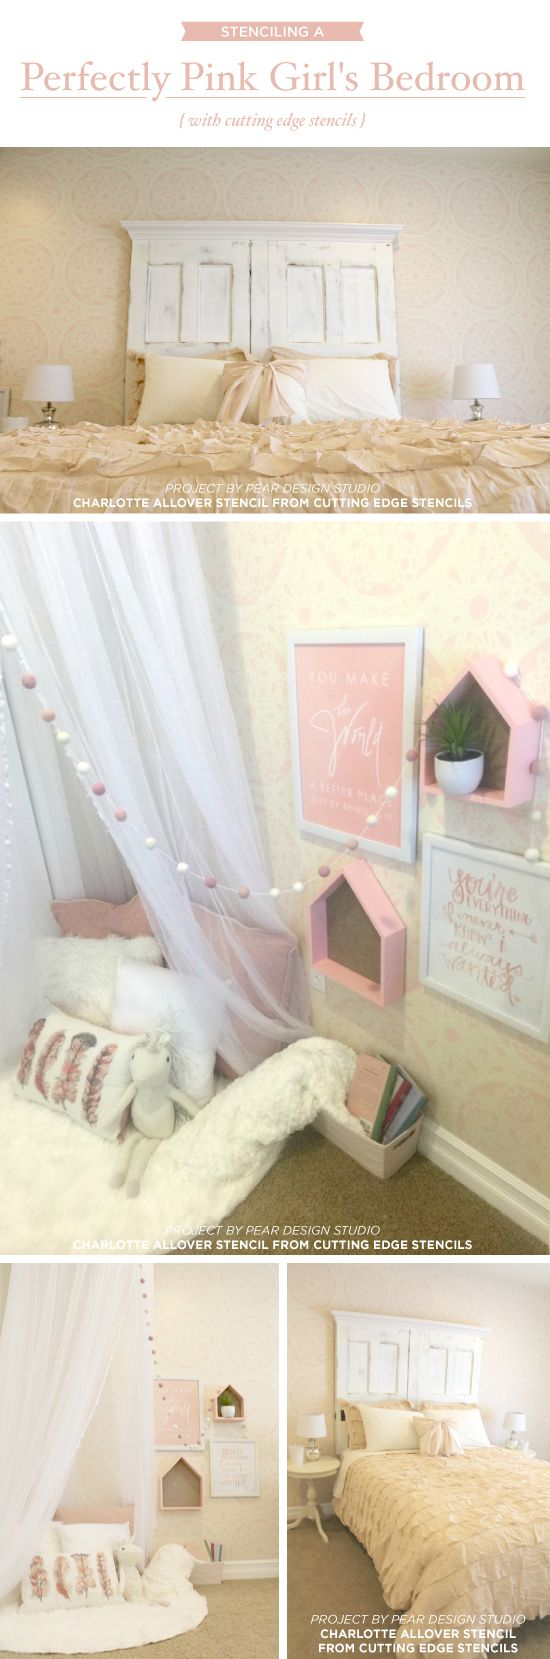 330 best girls room stencils decor images on pinterest cutting edge stencils shares a diy pink and white stenciled girls bedroom using the charlotte allover lace wall pattern amipublicfo Images